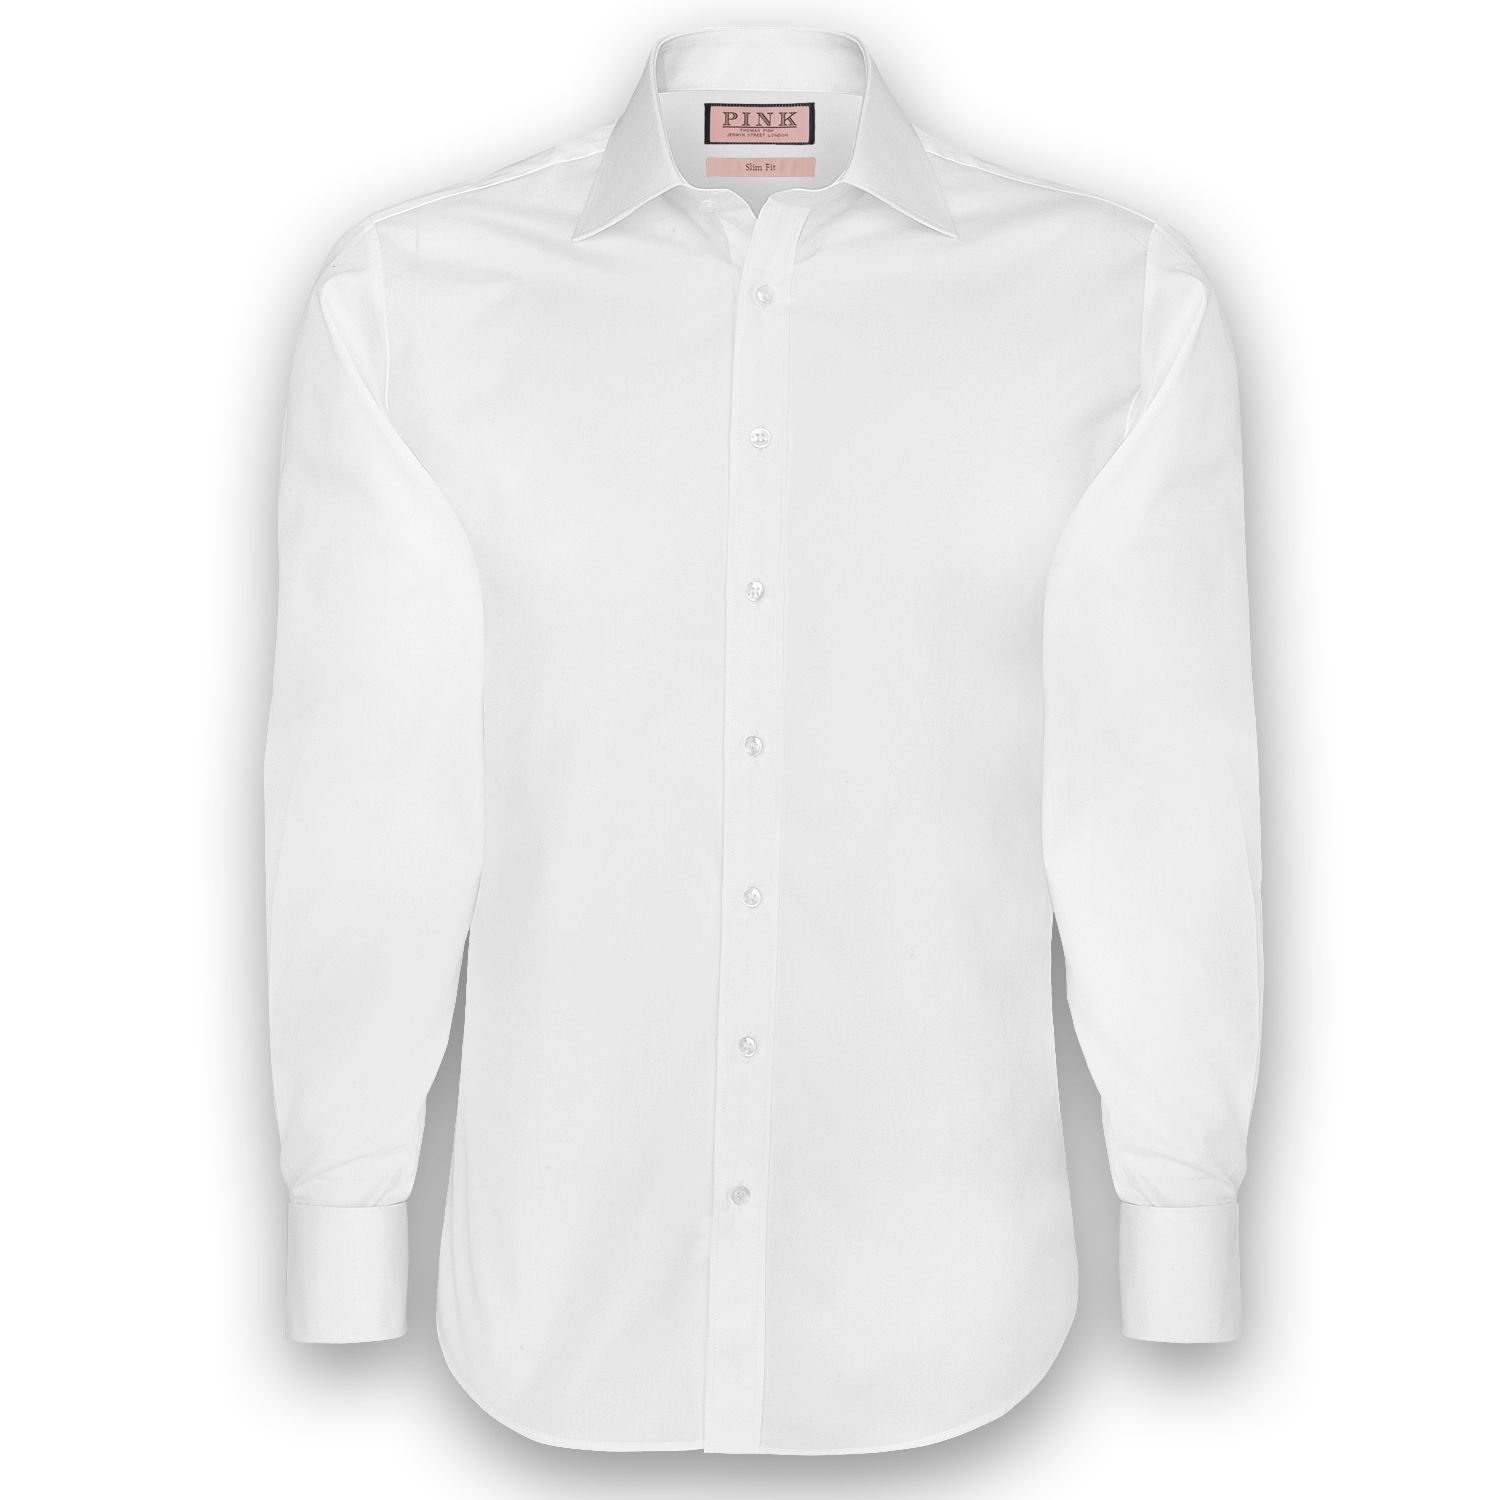 Slim fit button cuff shirt